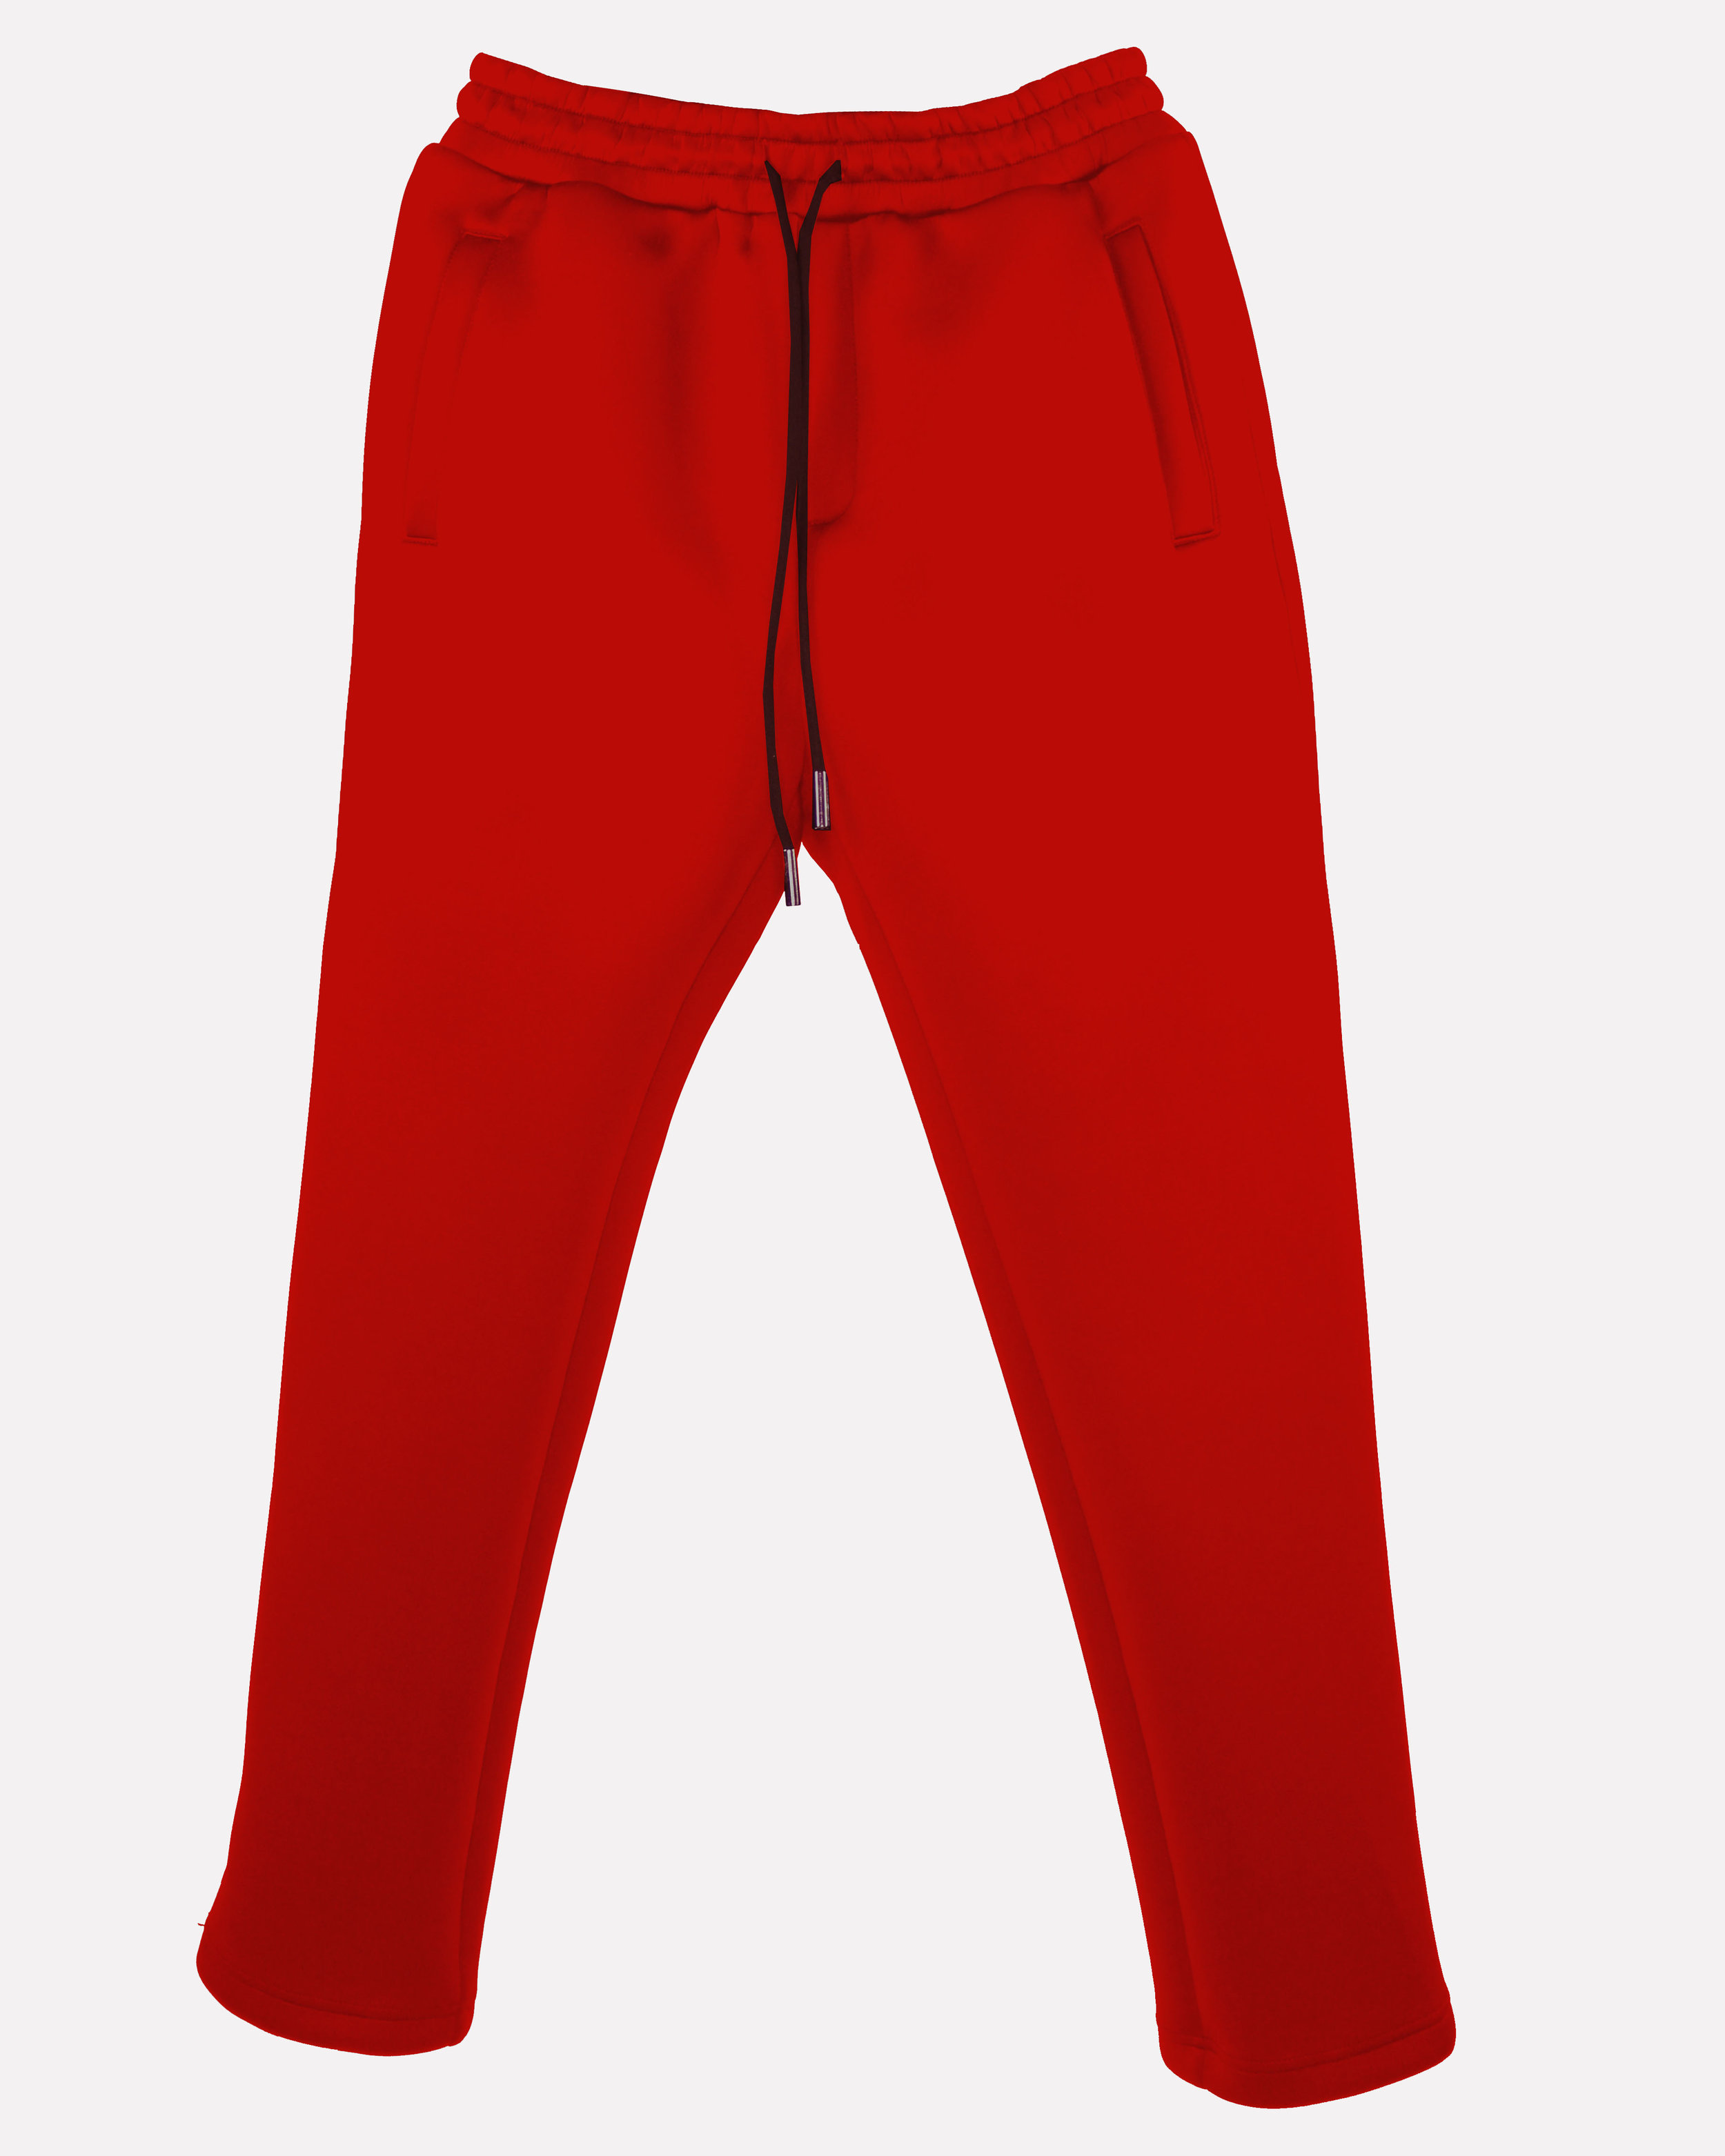 Red Pants Front.jpg